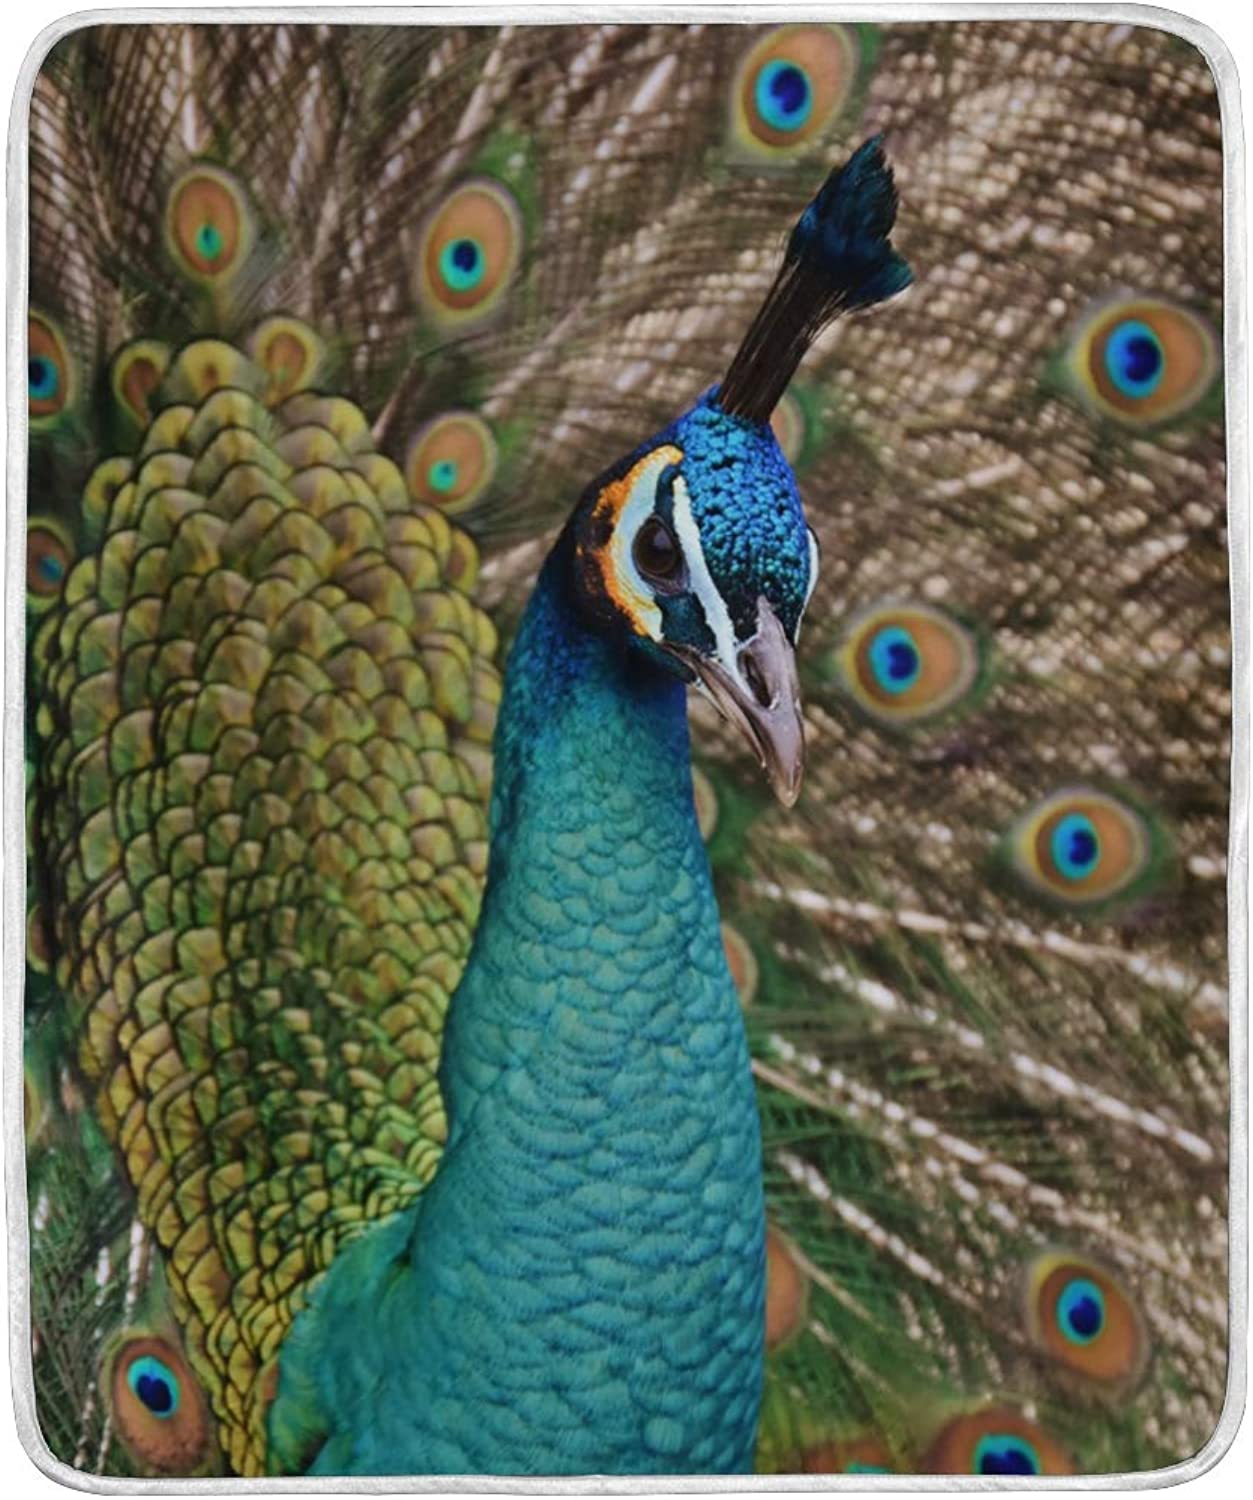 WIHVE Throw Blanket Peacock Lightweight Warm Cozy Microfiber Blankets Travelling Camping 50 x 60 Inch, All Season for Couch or Bed